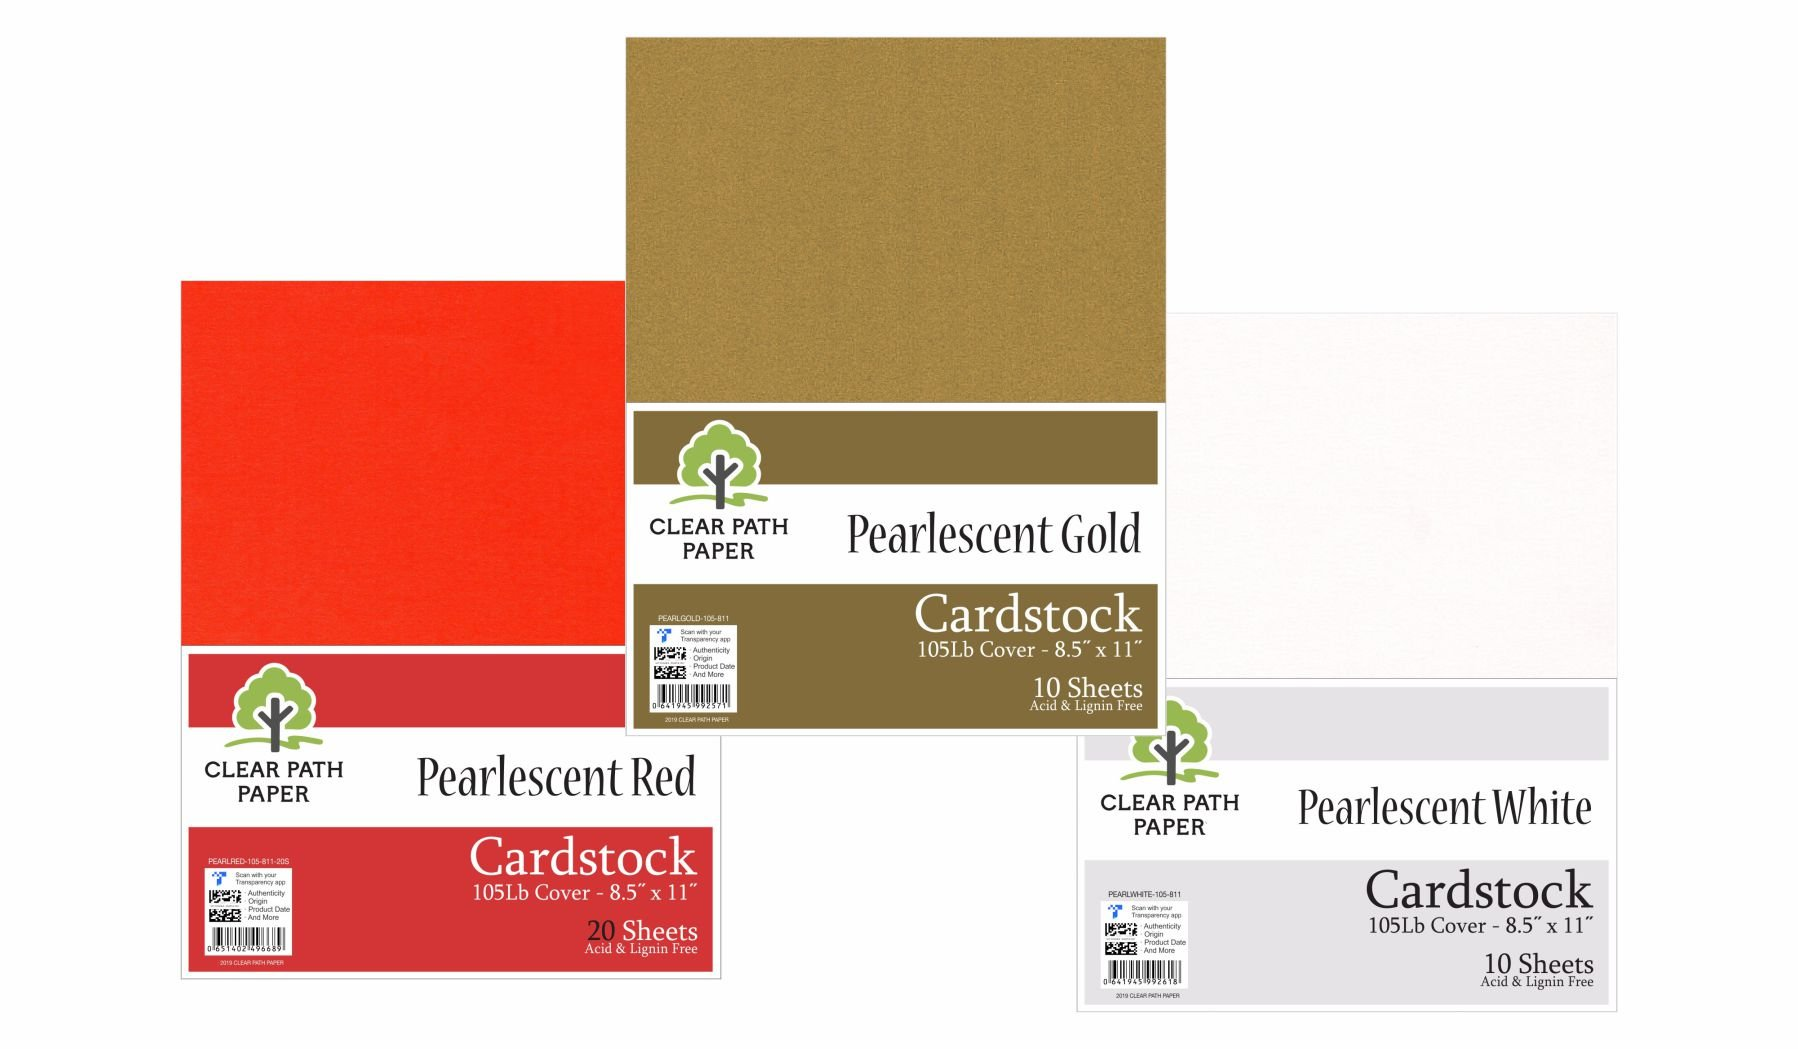 Image of an Amazon Bundle of Clear Path Paper Cardstock in Pearlescent Red, Pearlescent Gold, and Pearlescent White